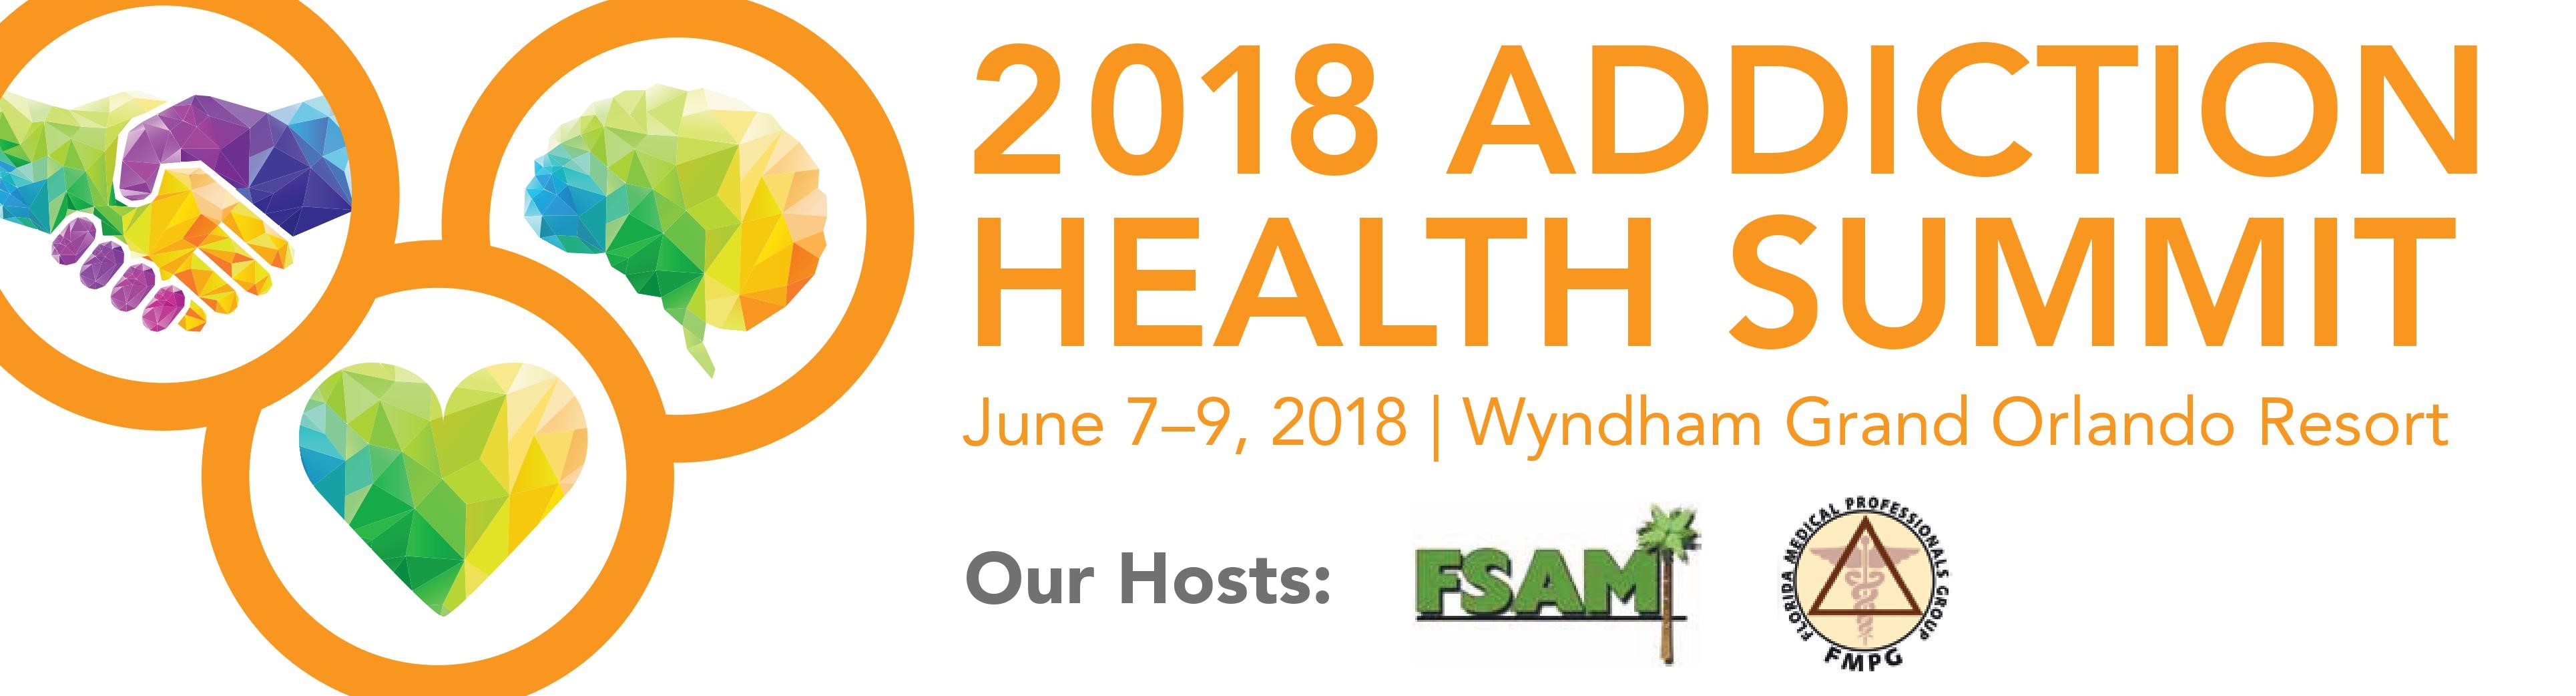 2018 Addiction Health Summit